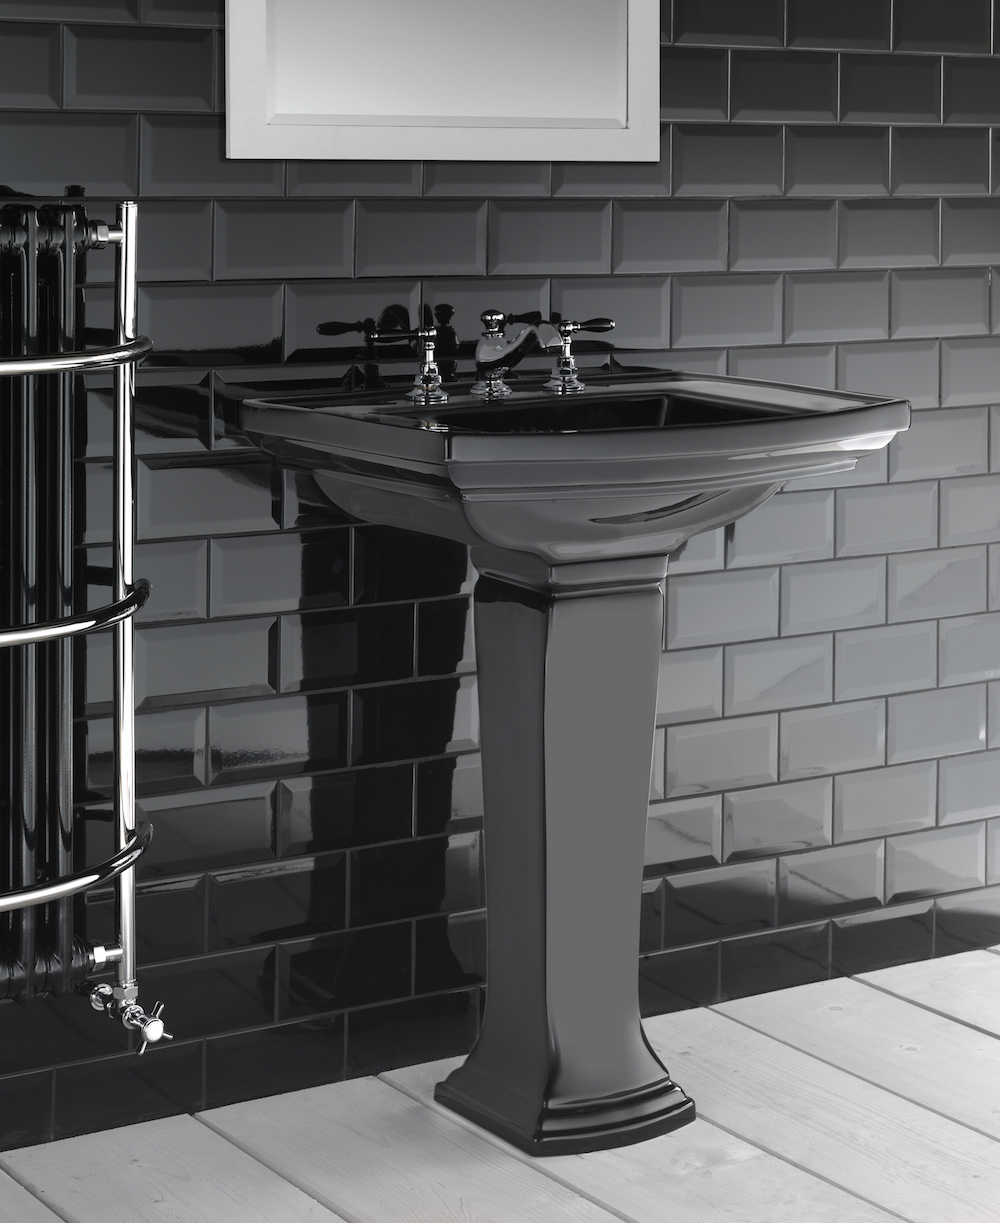 Image caption: Radcliffe large pedestal basin by Imperial Bathrooms